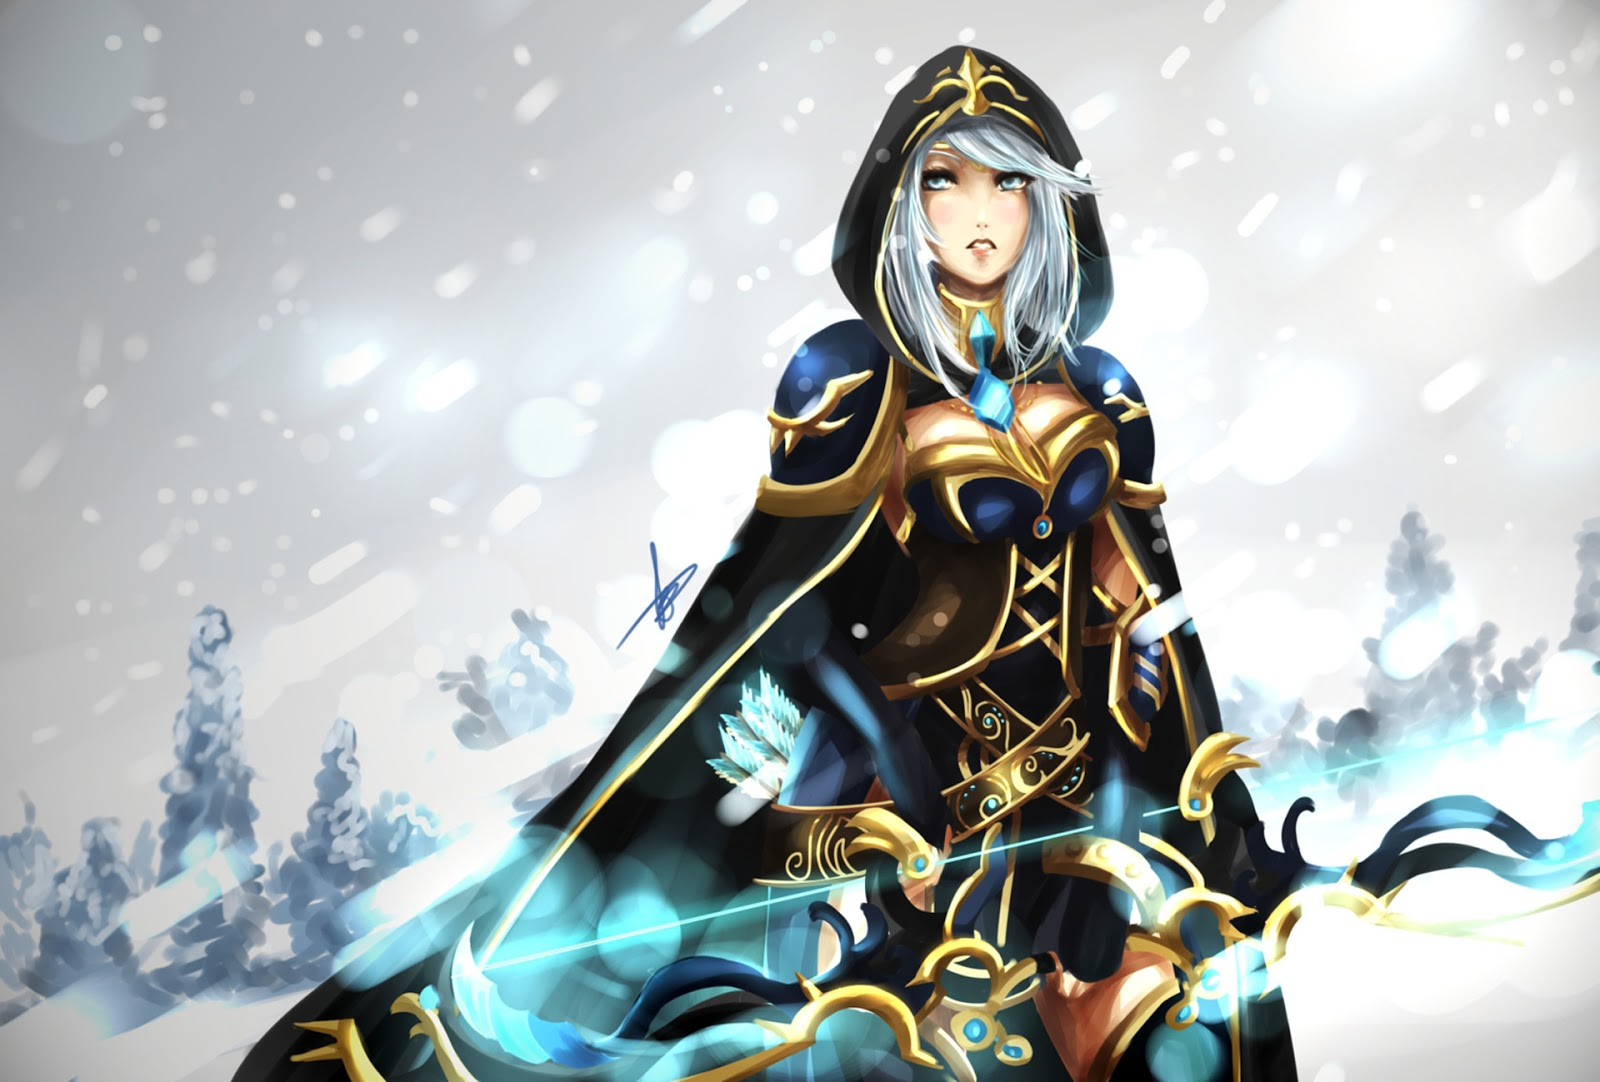 Ashe League Of Legends Heroes Champion Archer Bow Cape Snow Girl Female Online Computer Video Game